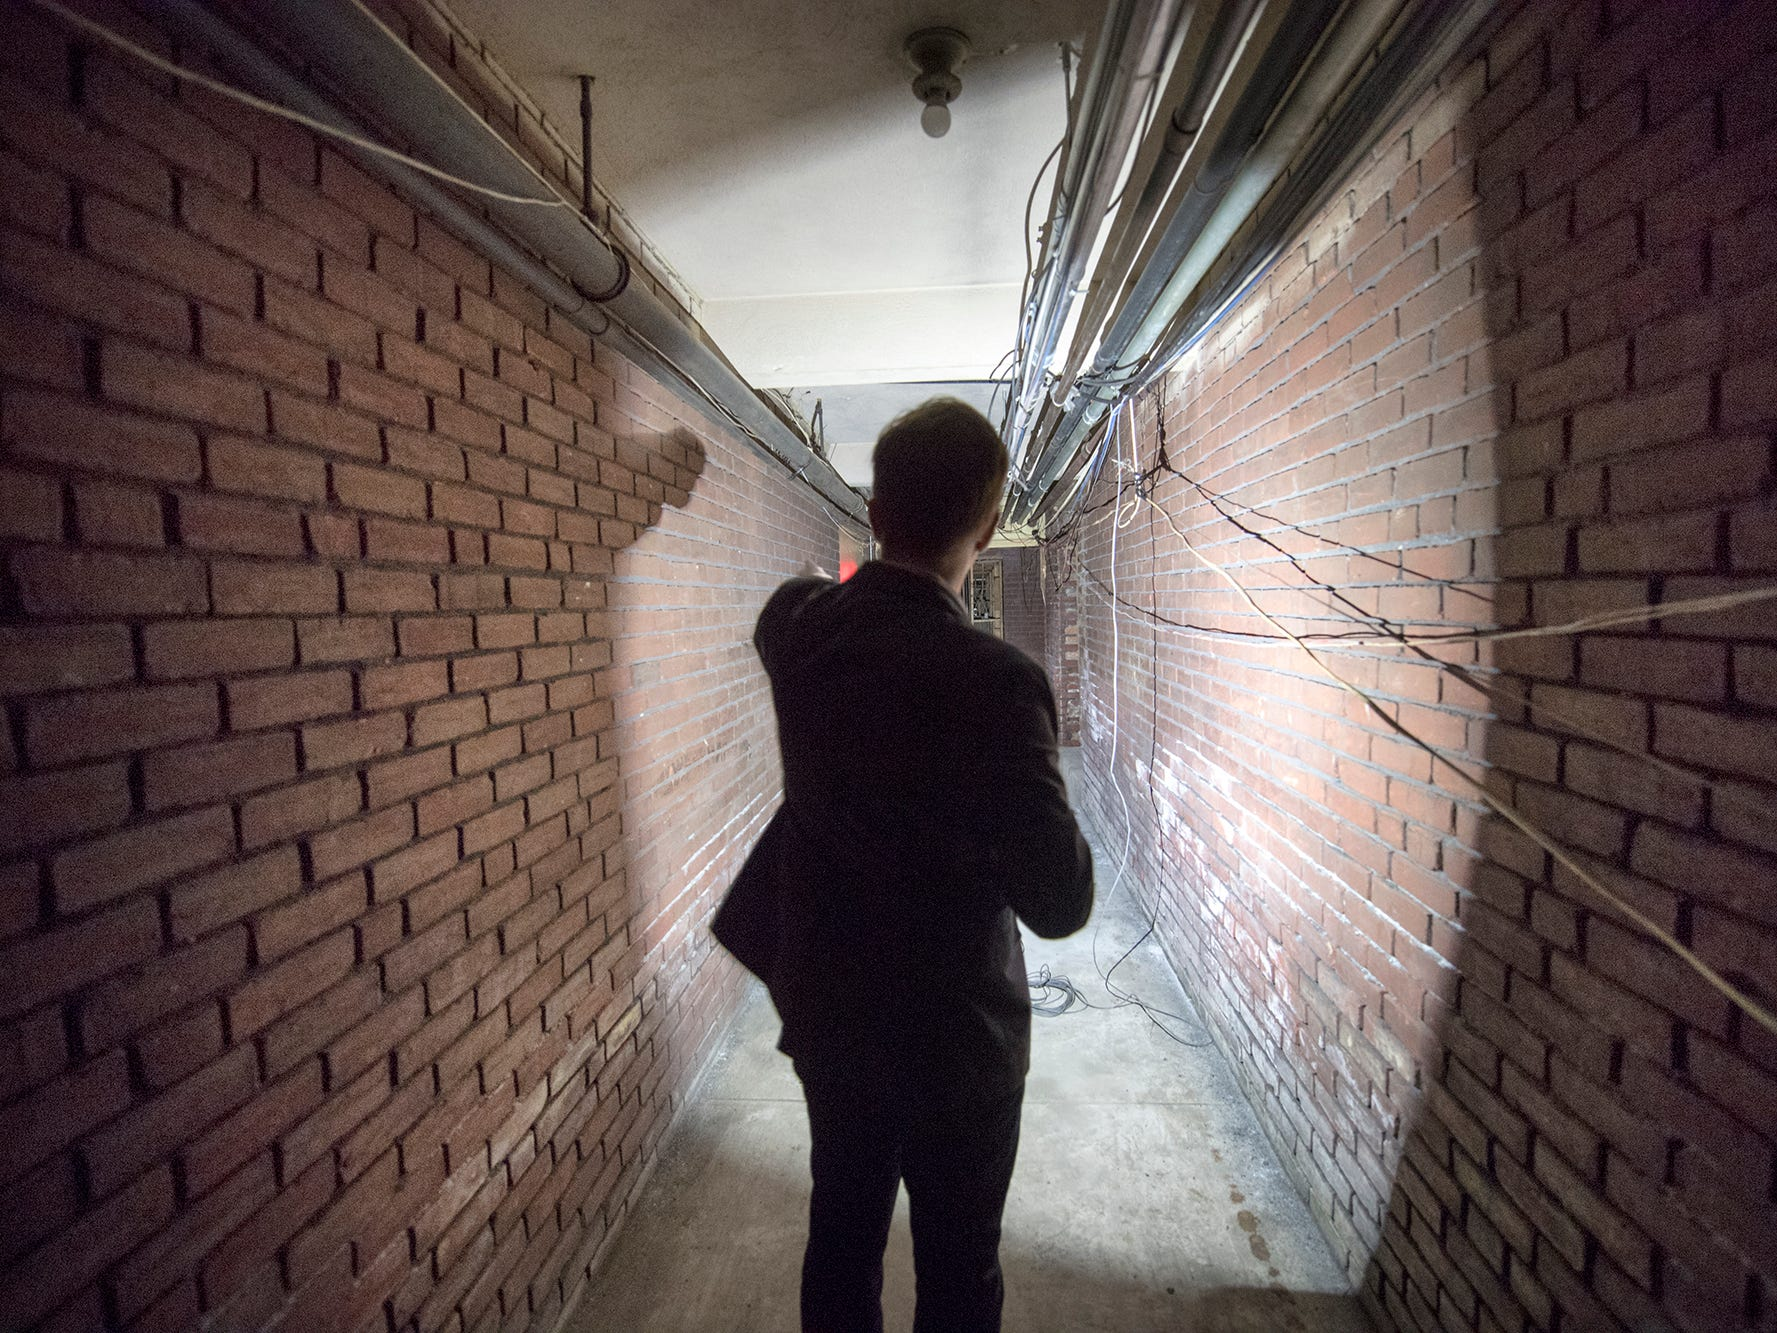 Dylan Bauer, president of development for Royal Square Development & Construction, walks through a narrow hallway that runs the length of the basement of the former Cobblestones Building on Wednesday January 9, 2019.